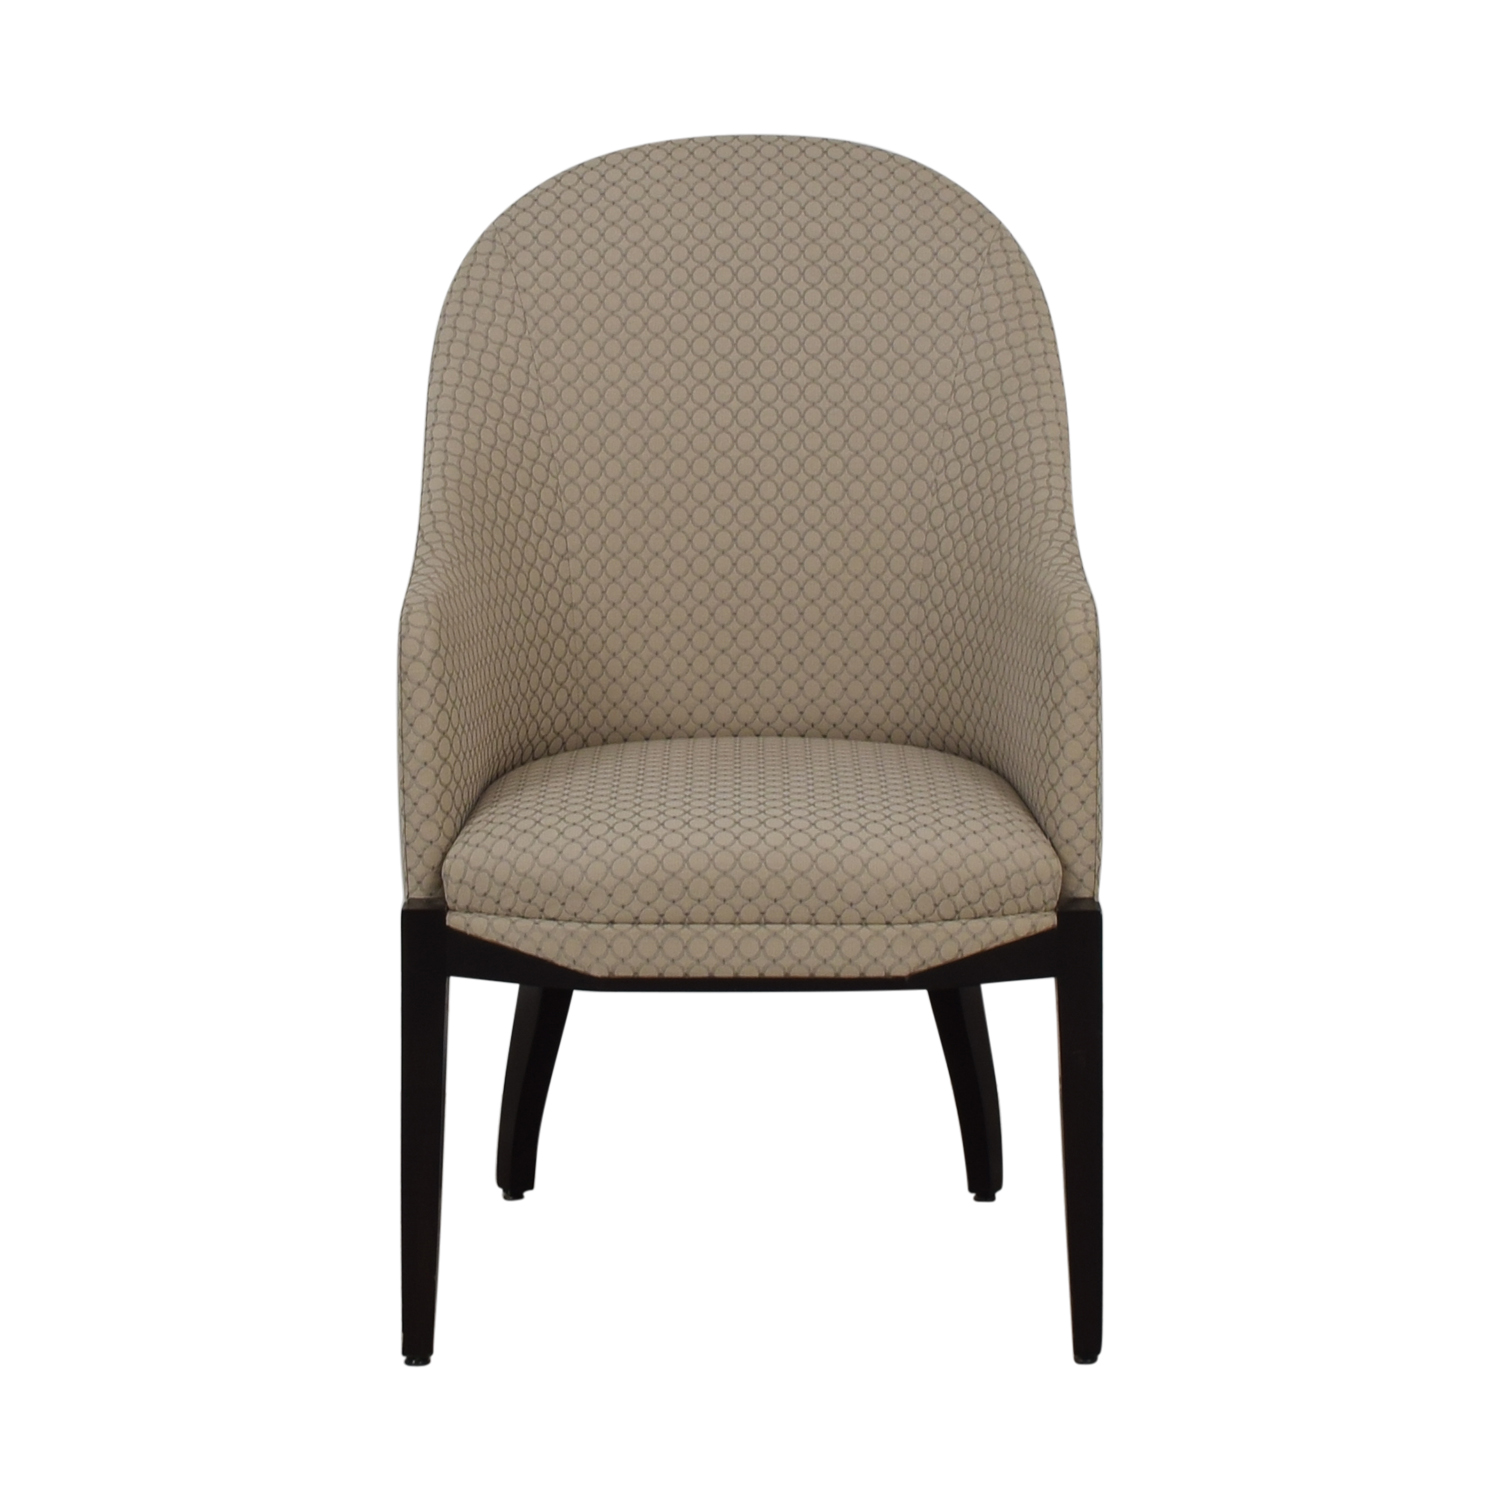 Furniture Masters Beige Circle Chair / Chairs